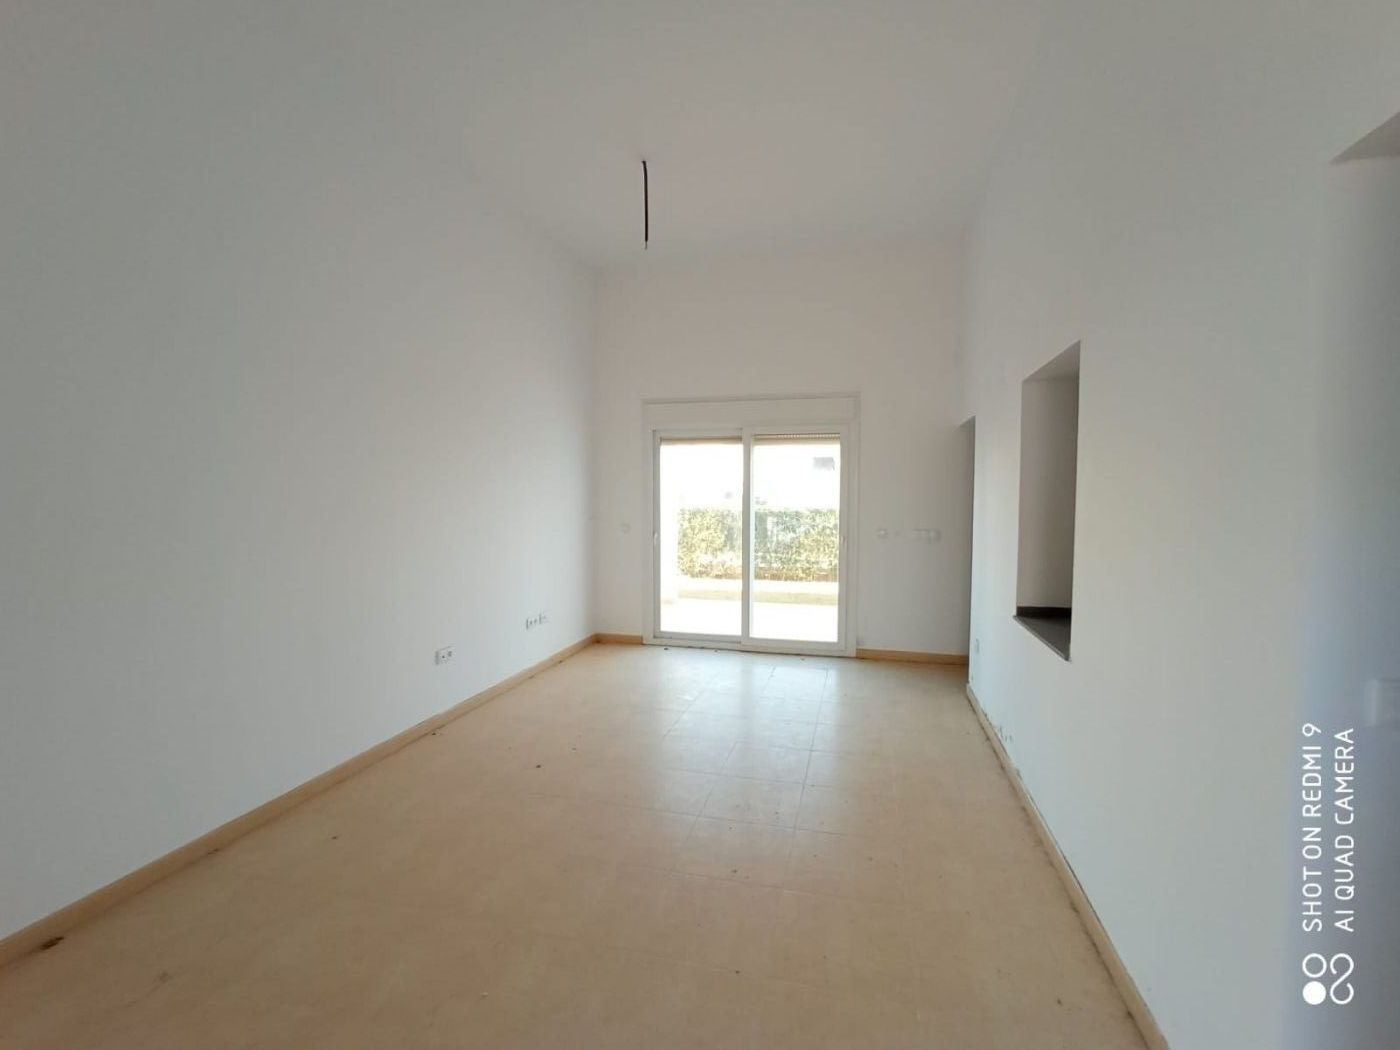 Gallery Image 7 of Villa Jana in need of some TLC for sale at bargain price